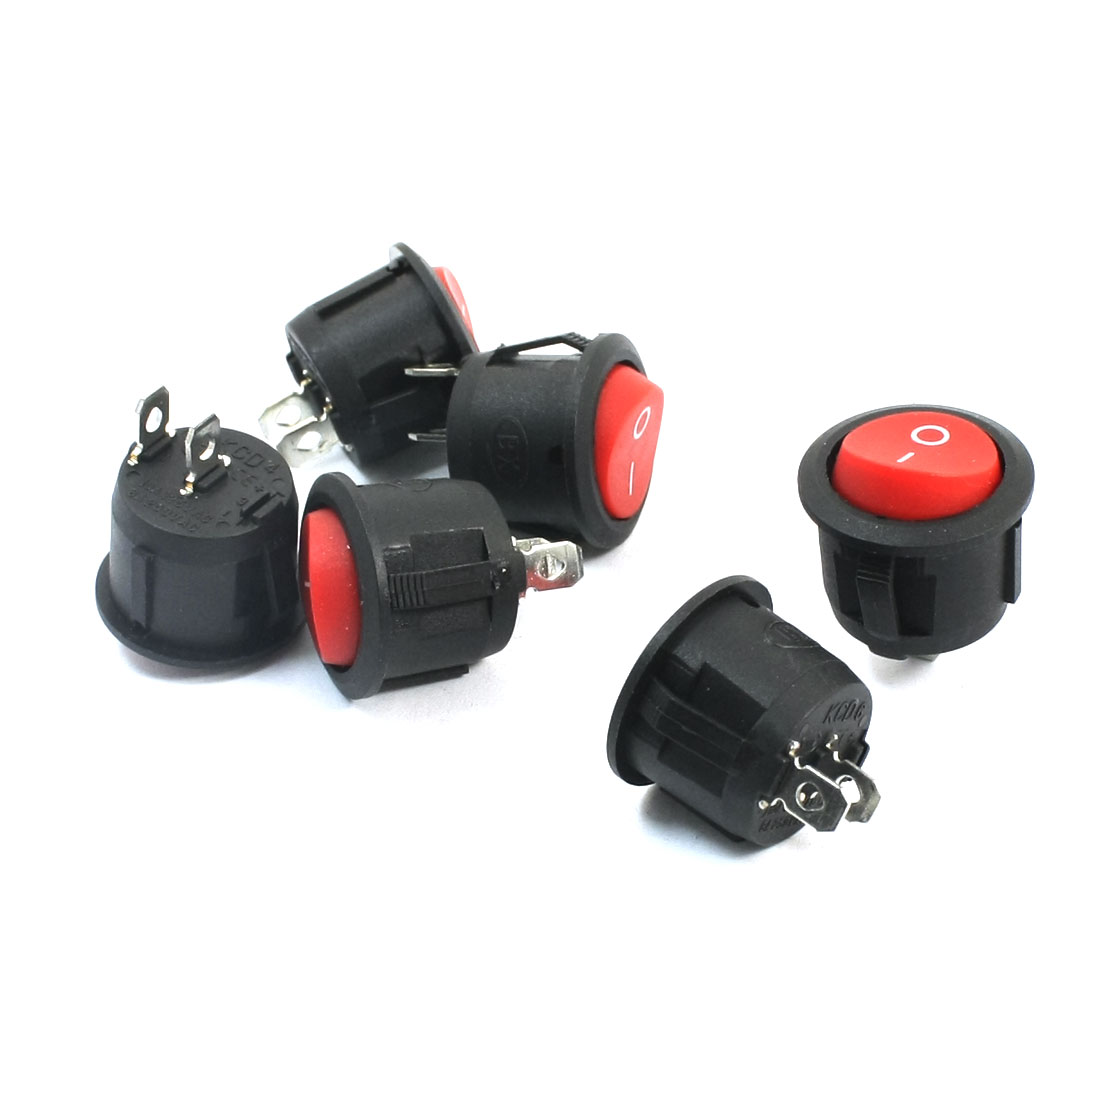 6Pcs SPST 2 Position ON/OFF 2 Soldering Pin Snap In Red Button Round Boat Rocker Switch AC250V 6A AC125V 10A